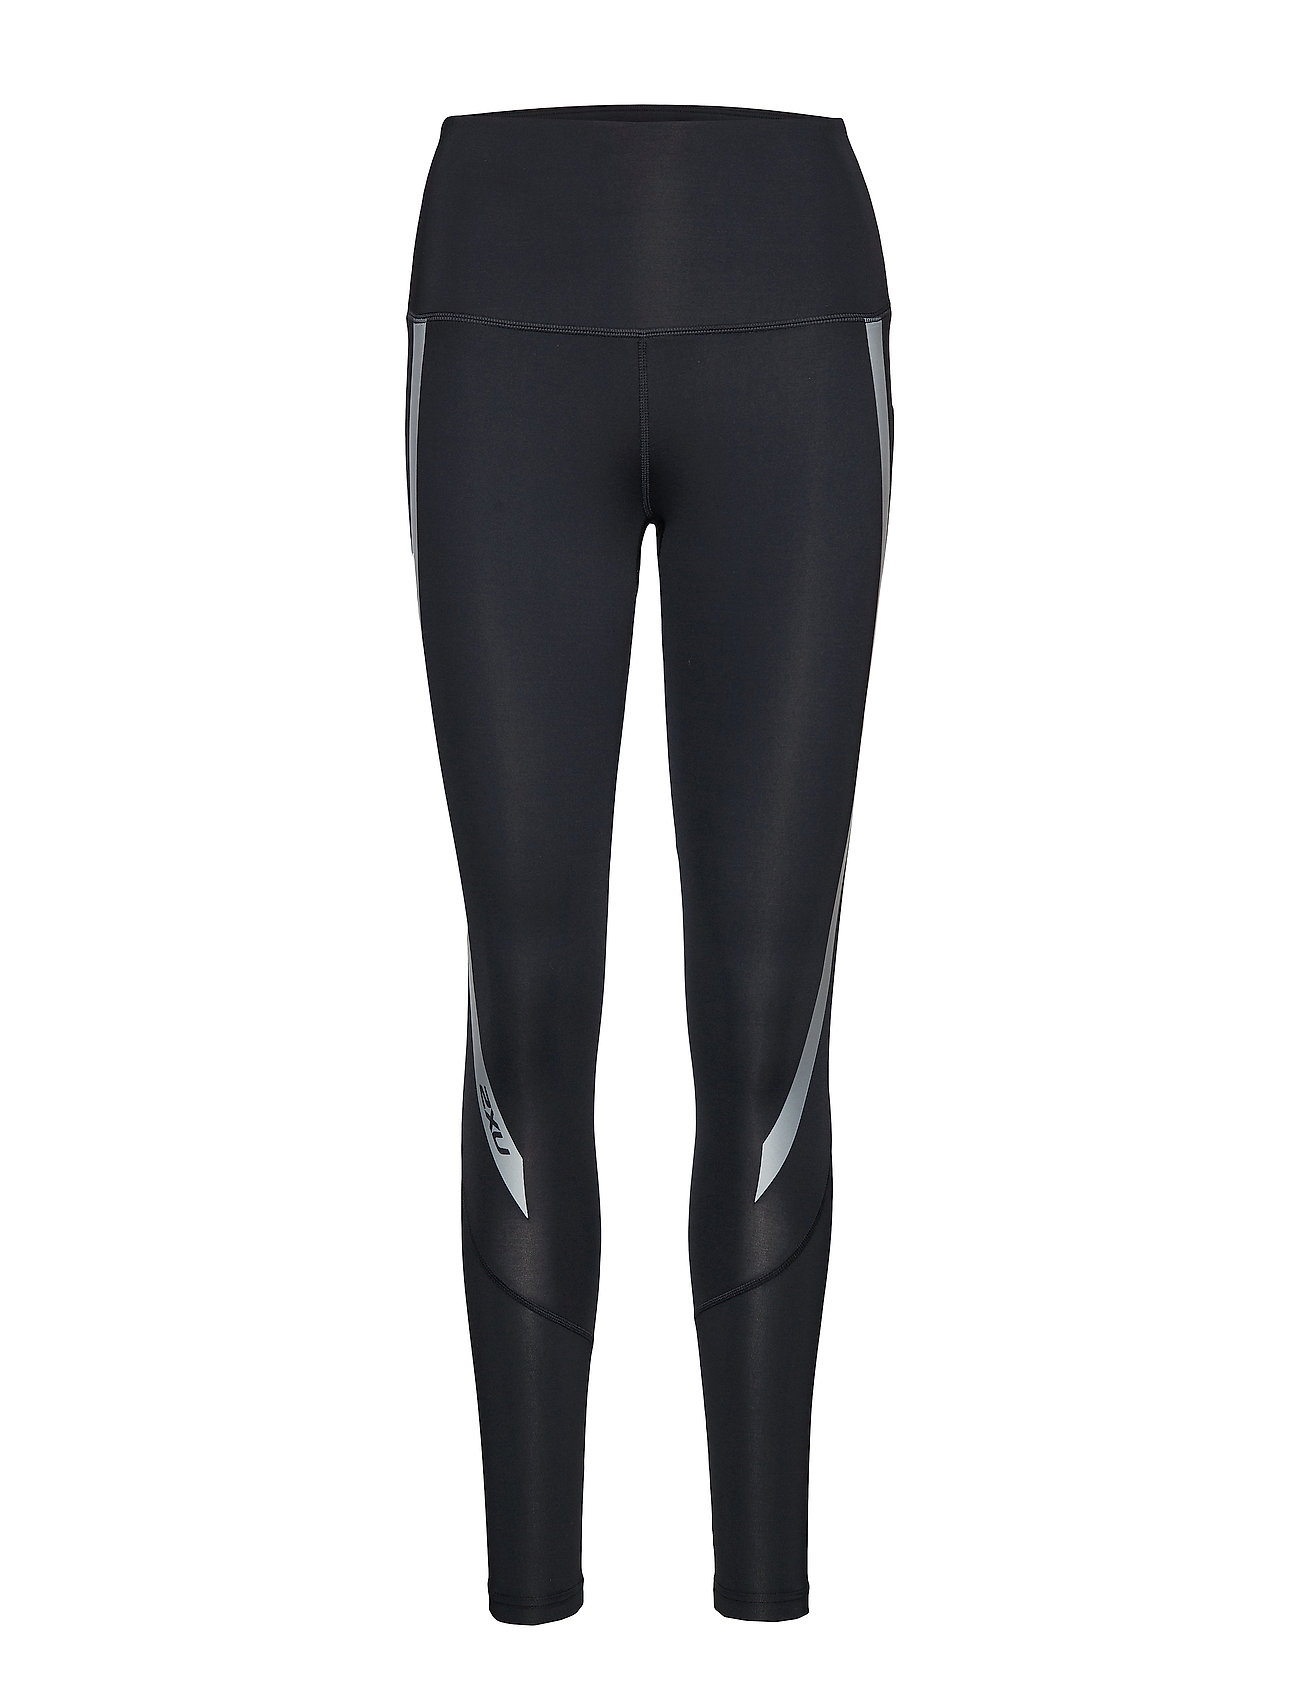 2XU Hi-Rise Compression Tights-W - BLACK/SILVER